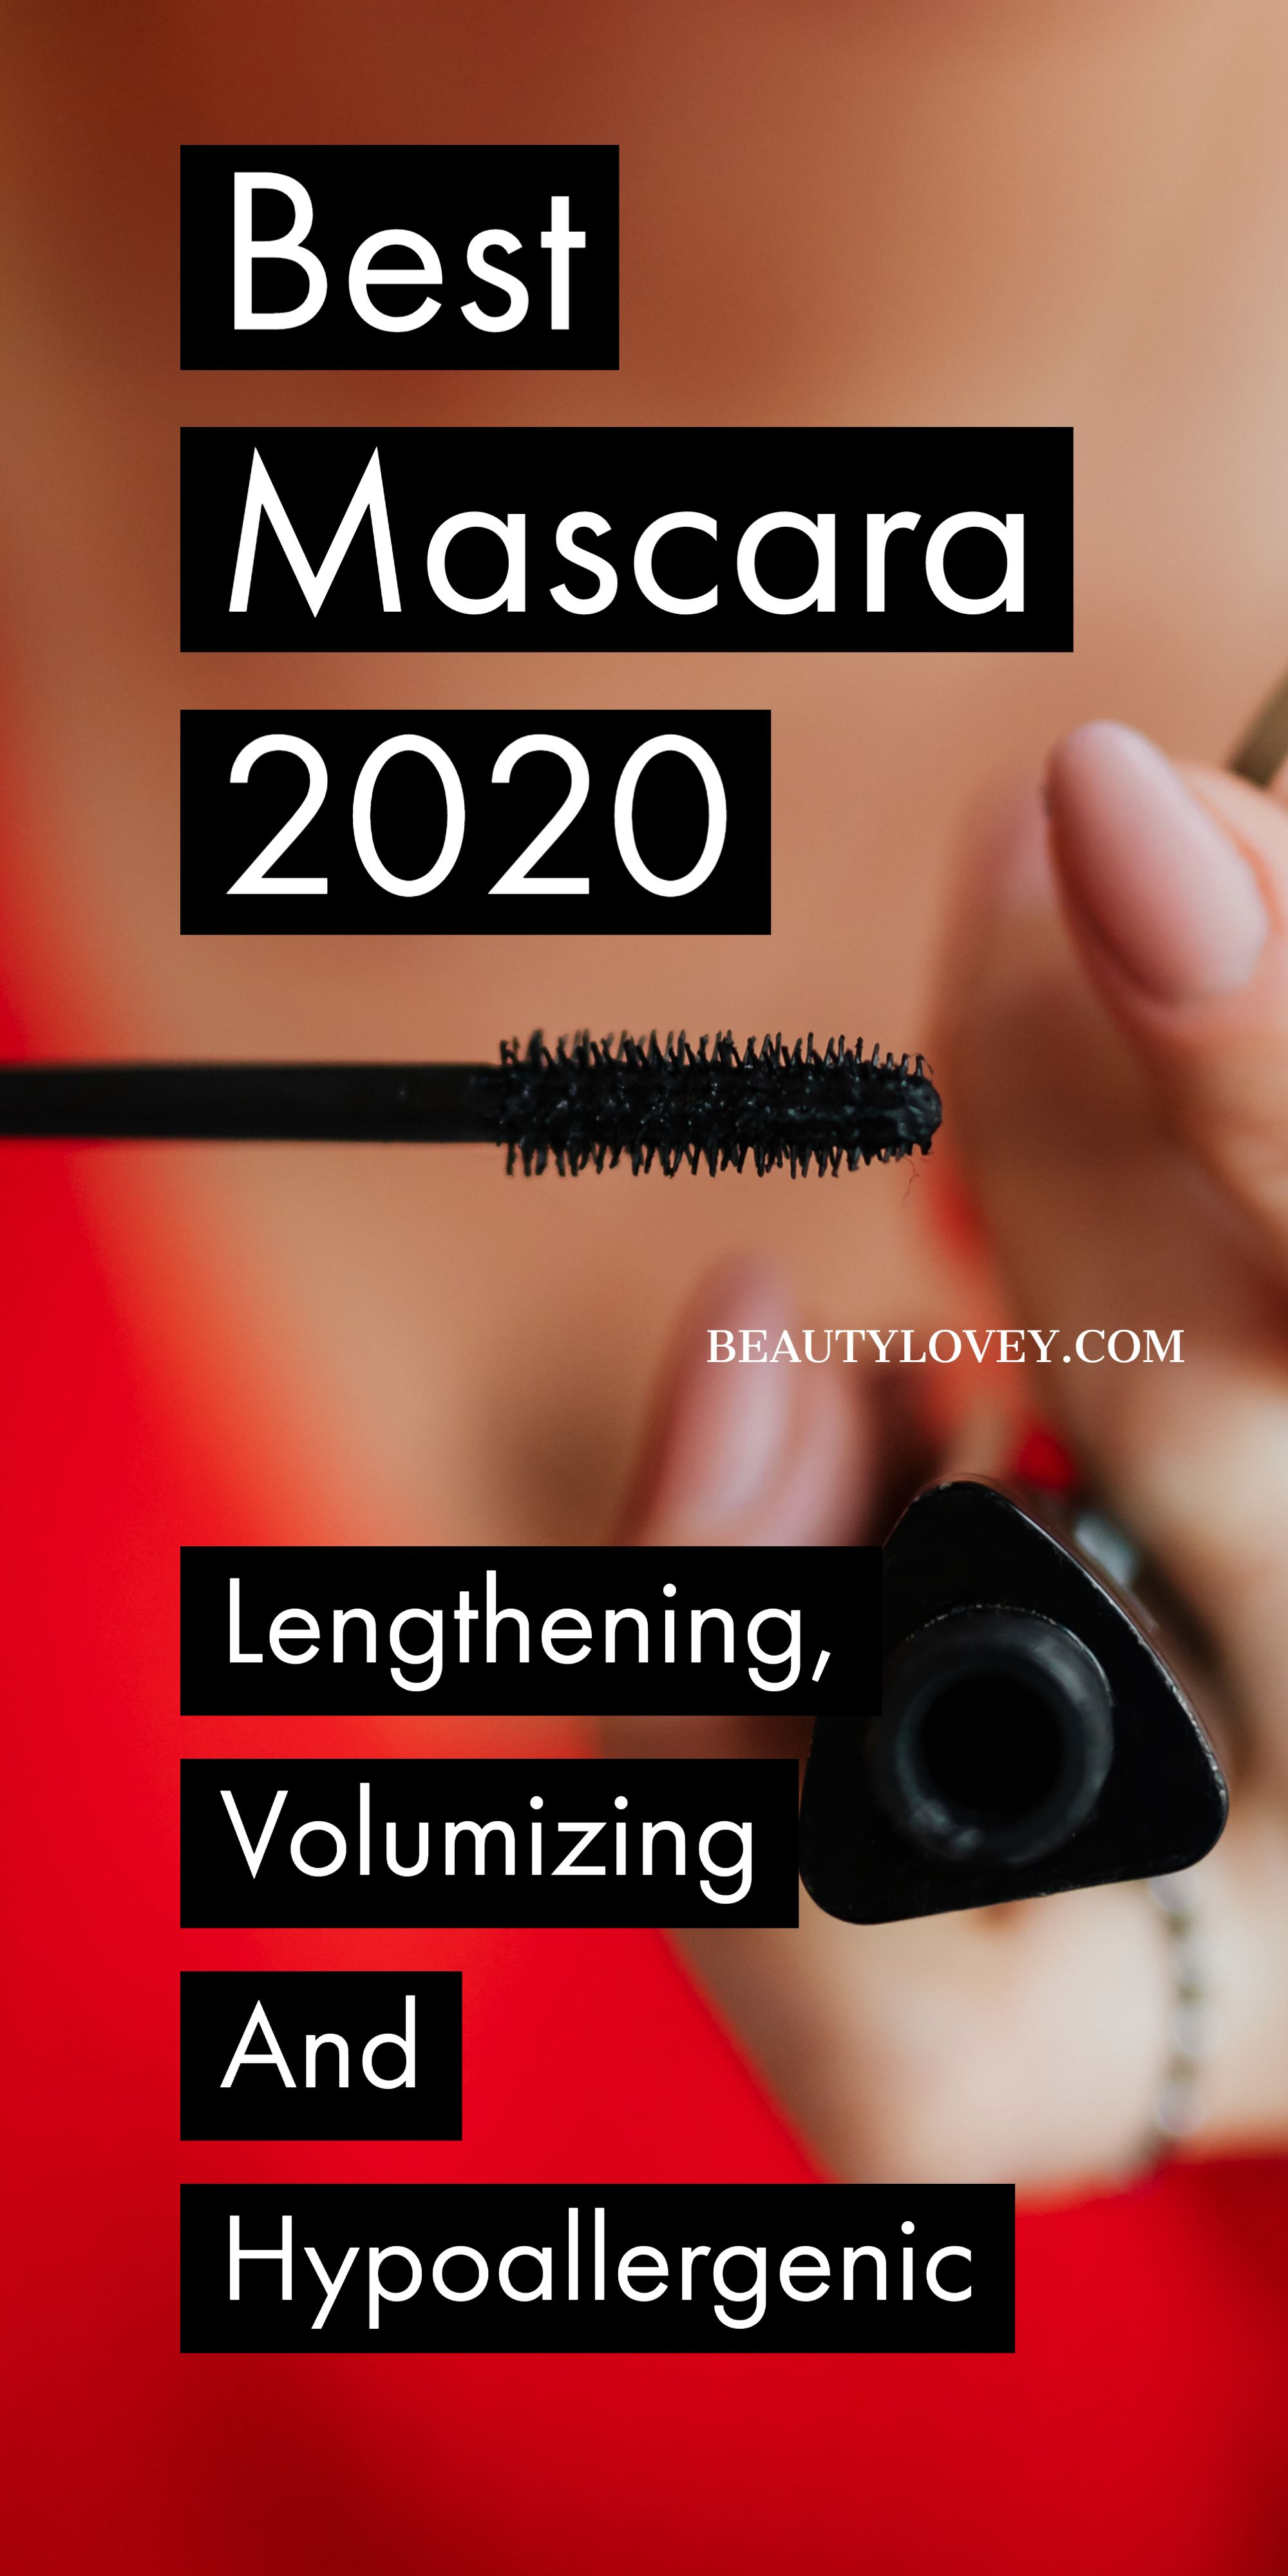 Best Mascara 2020 lengthening, Volumizing and